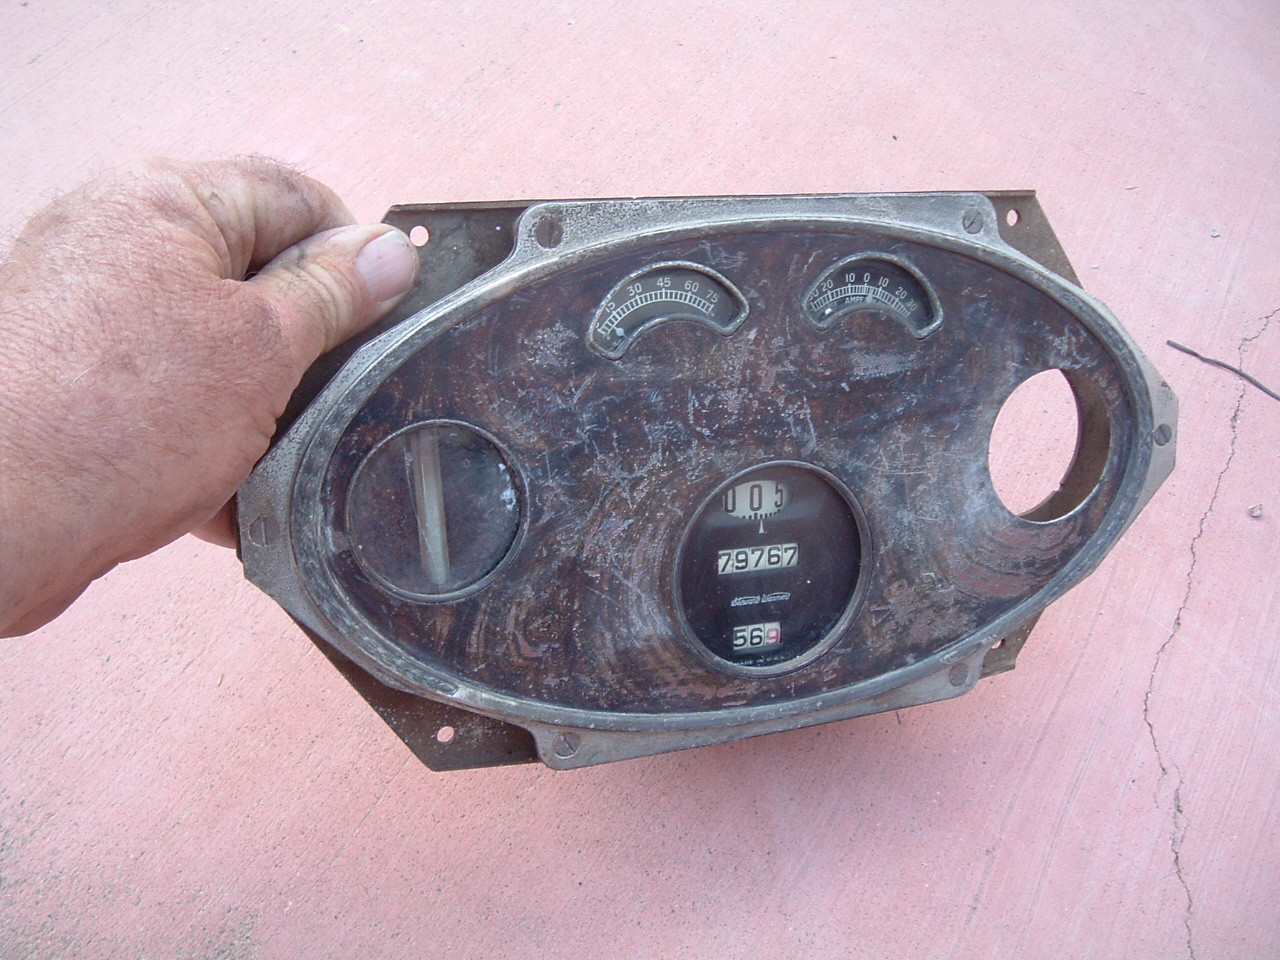 1927 28 willys knight speedometer and gauge cluster original used (z 27-8willyscluster)